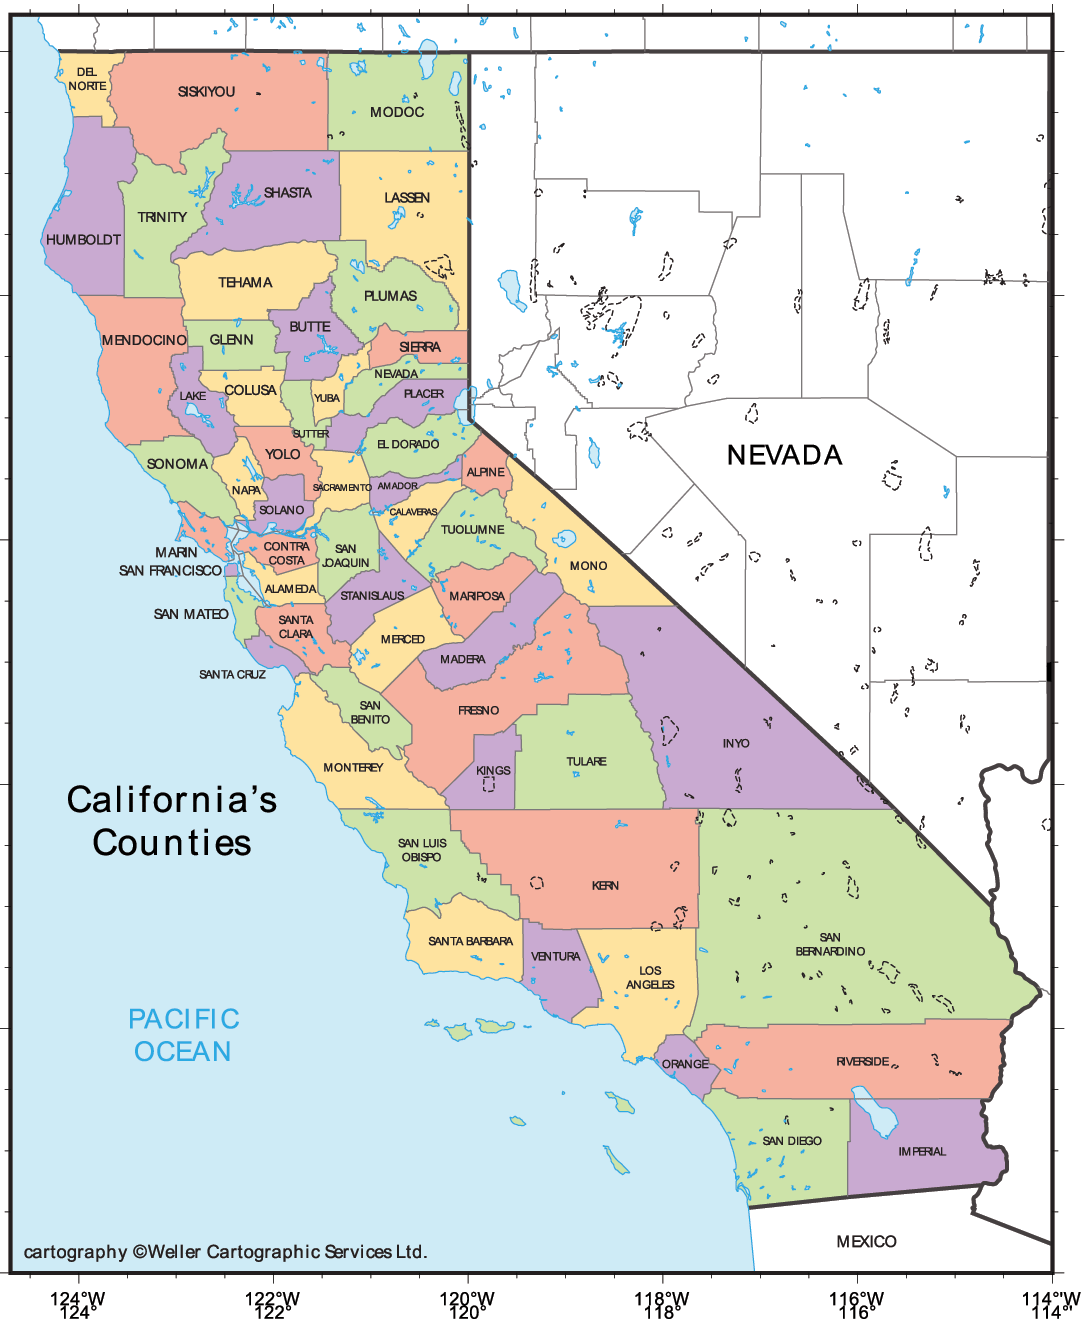 California Cities Map Mapsofnet - Northern california cities map